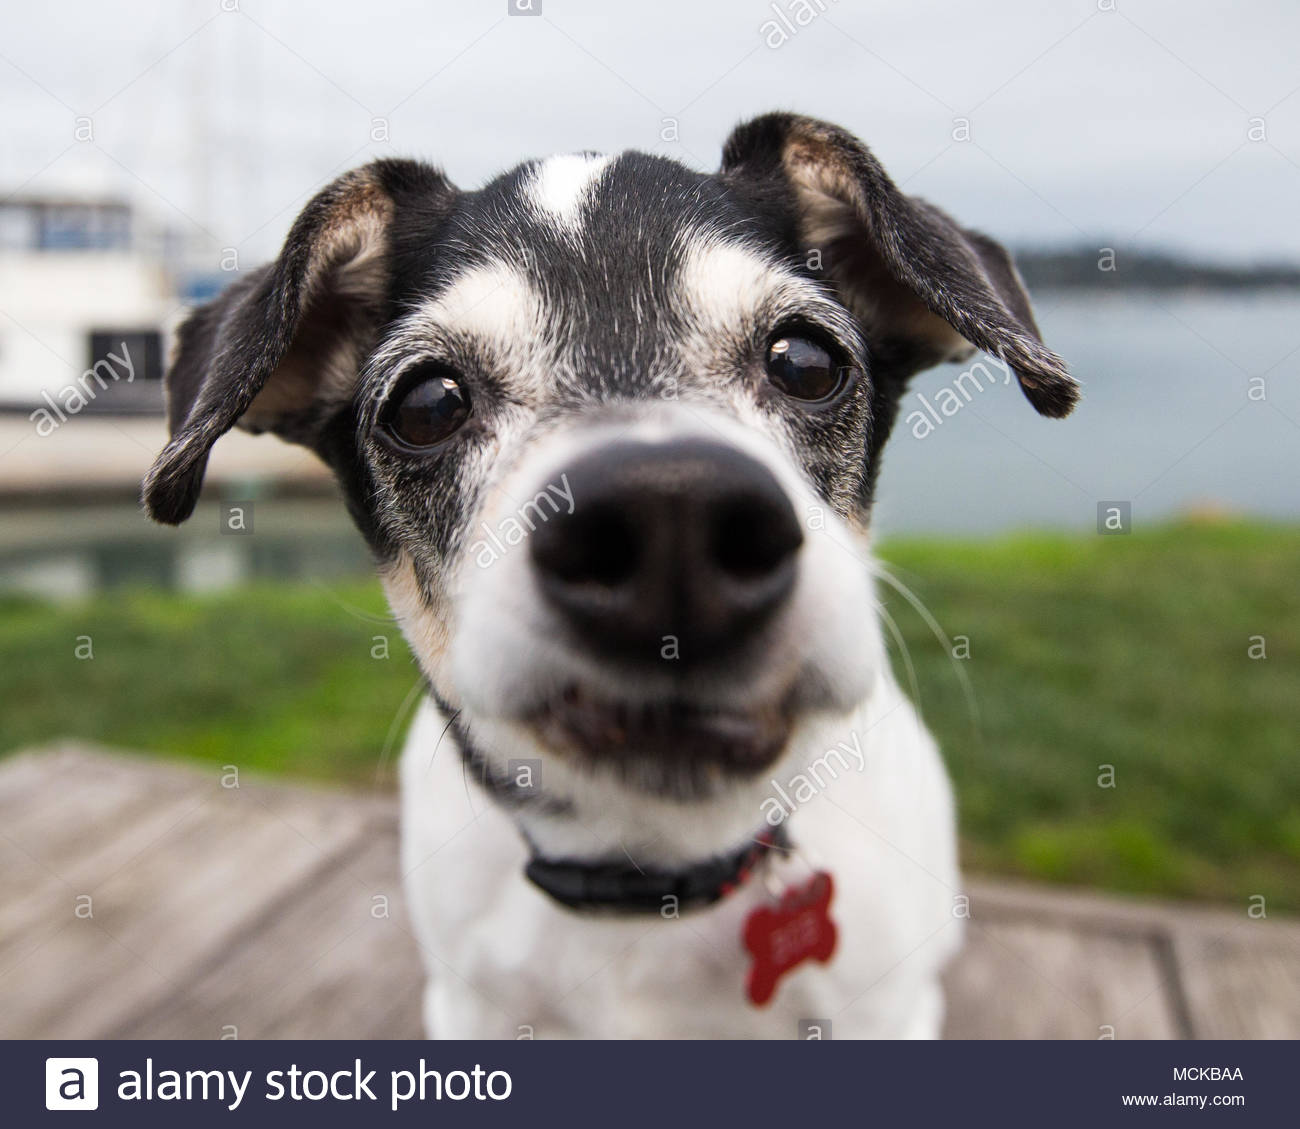 Very close up view of black and white senior terrier mix dog with nose in the camera - Stock Image